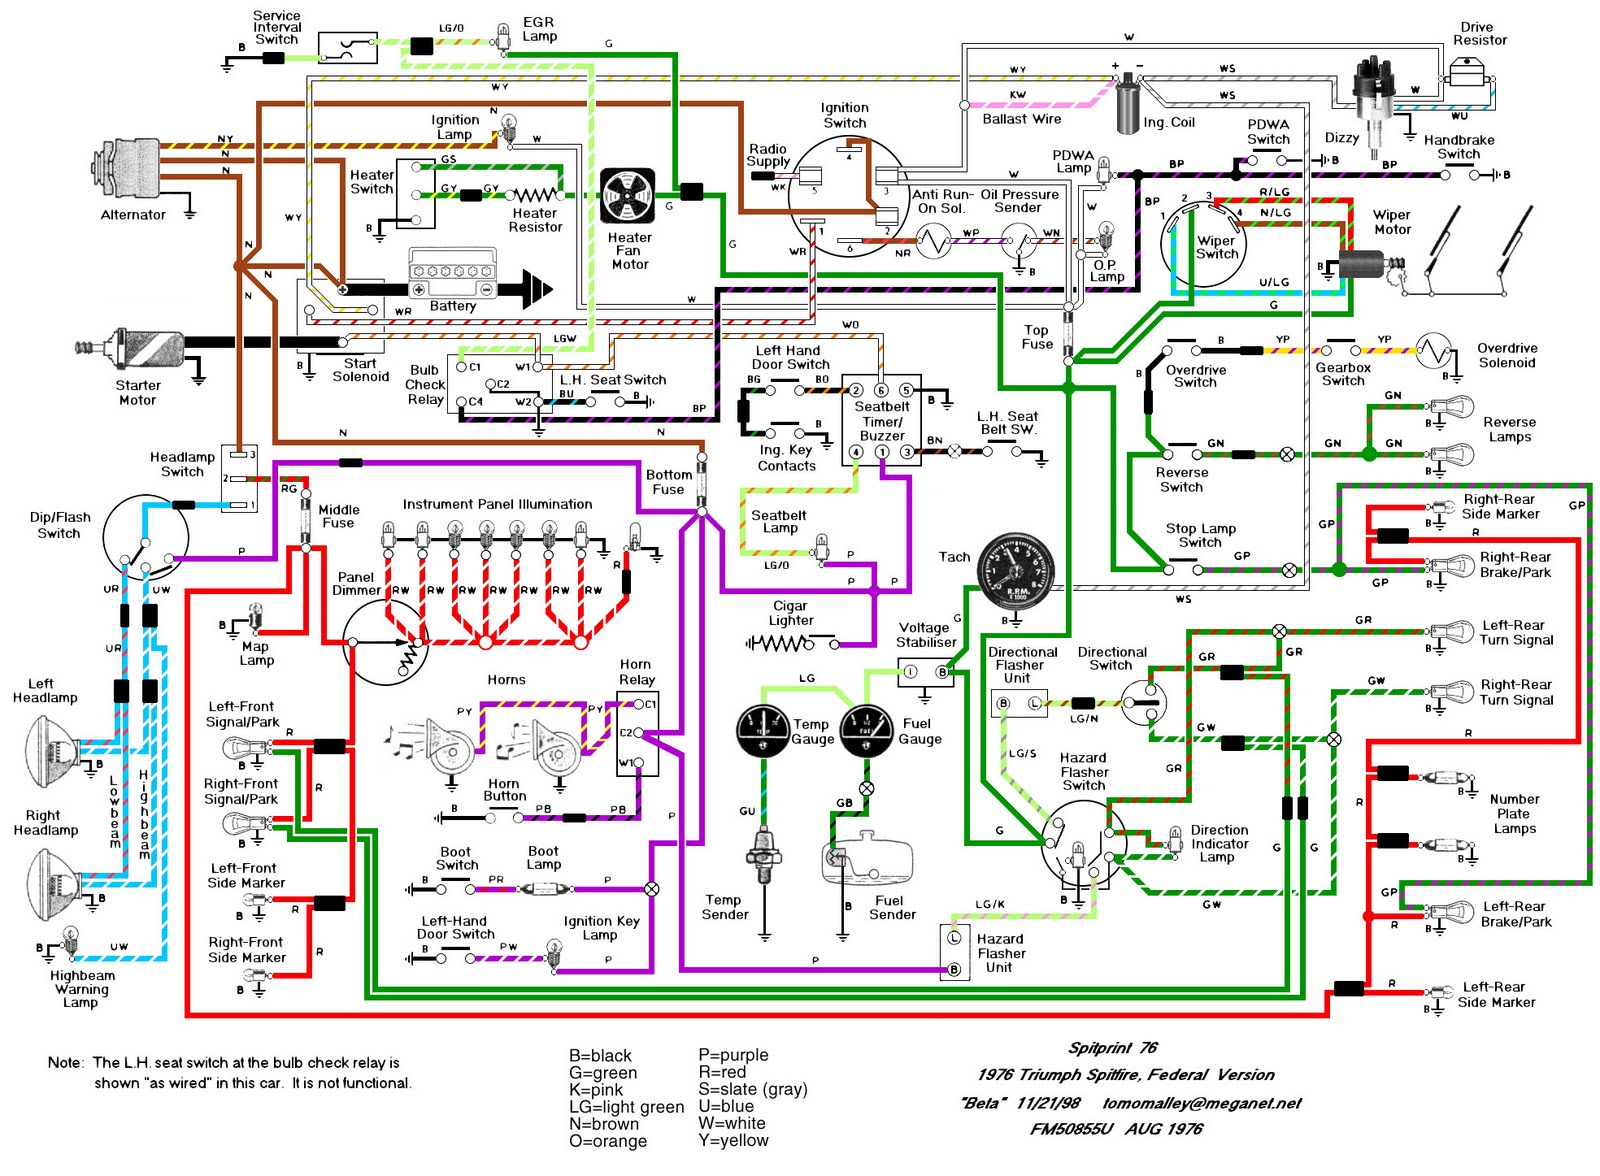 r53 mini cooper fuse diagram wiring diagram used 2004 mini cooper wiring diagram [ 1600 x 1176 Pixel ]